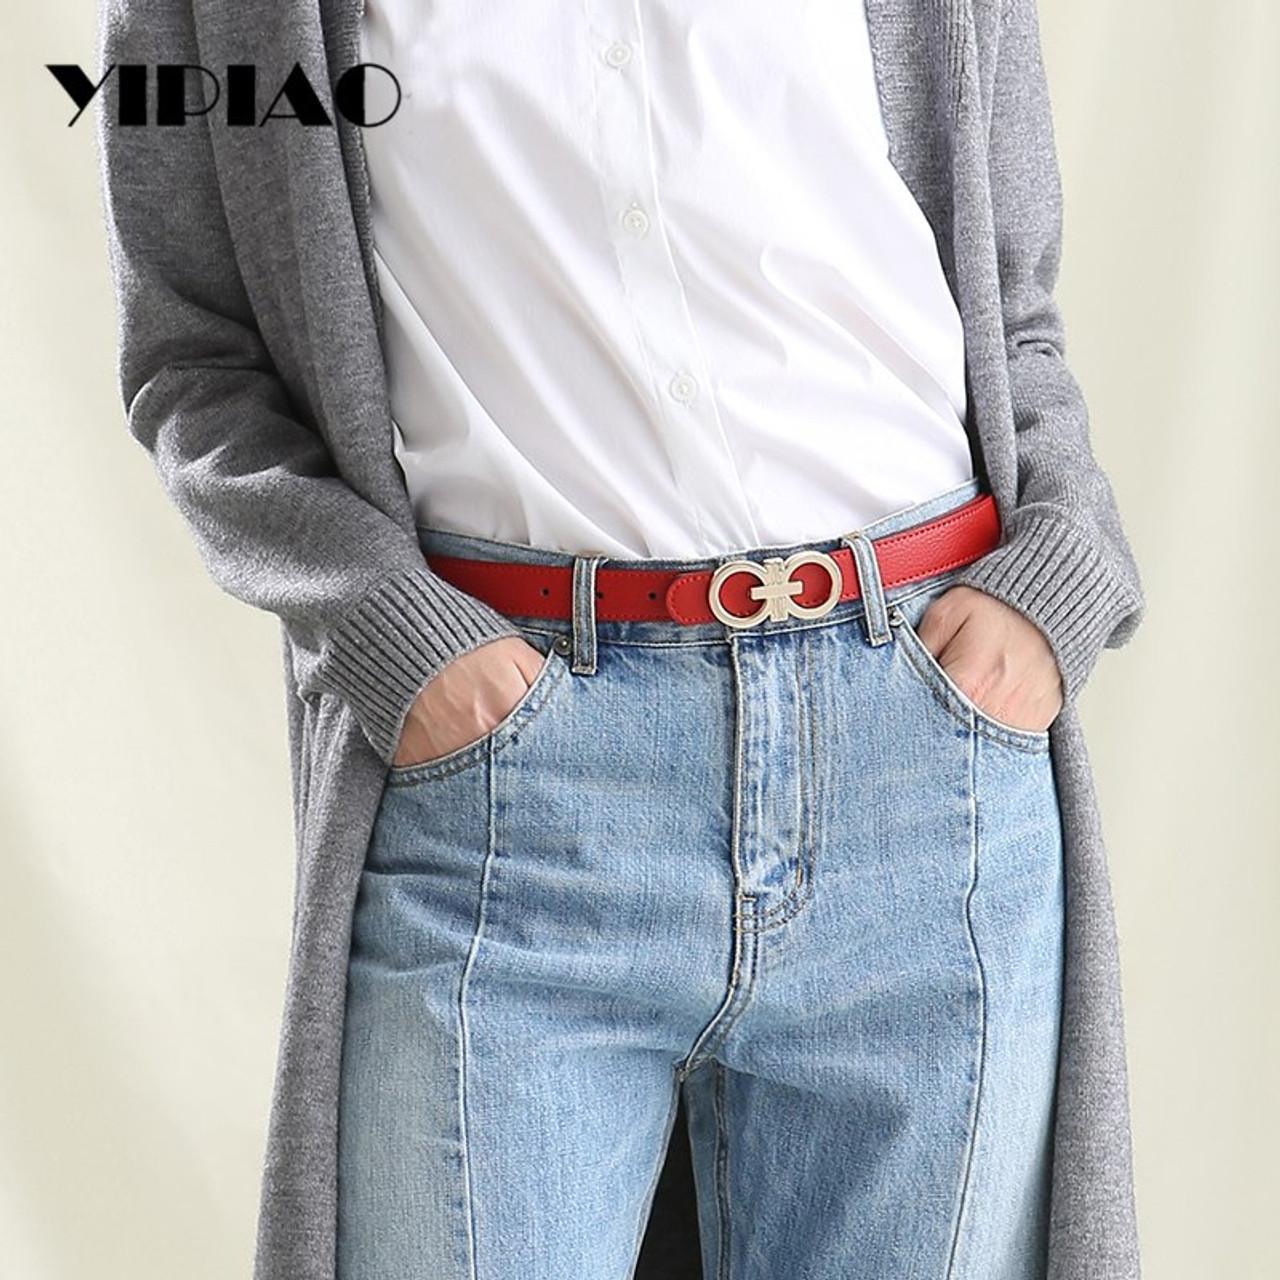 b4b2402437ad Designer-Belts-Women-High-Quality-Luxury-Brand-Ceinture-Femme-Casual -double-gg-Lady-Belt-genuine-Leather  80050.1535111297.jpg